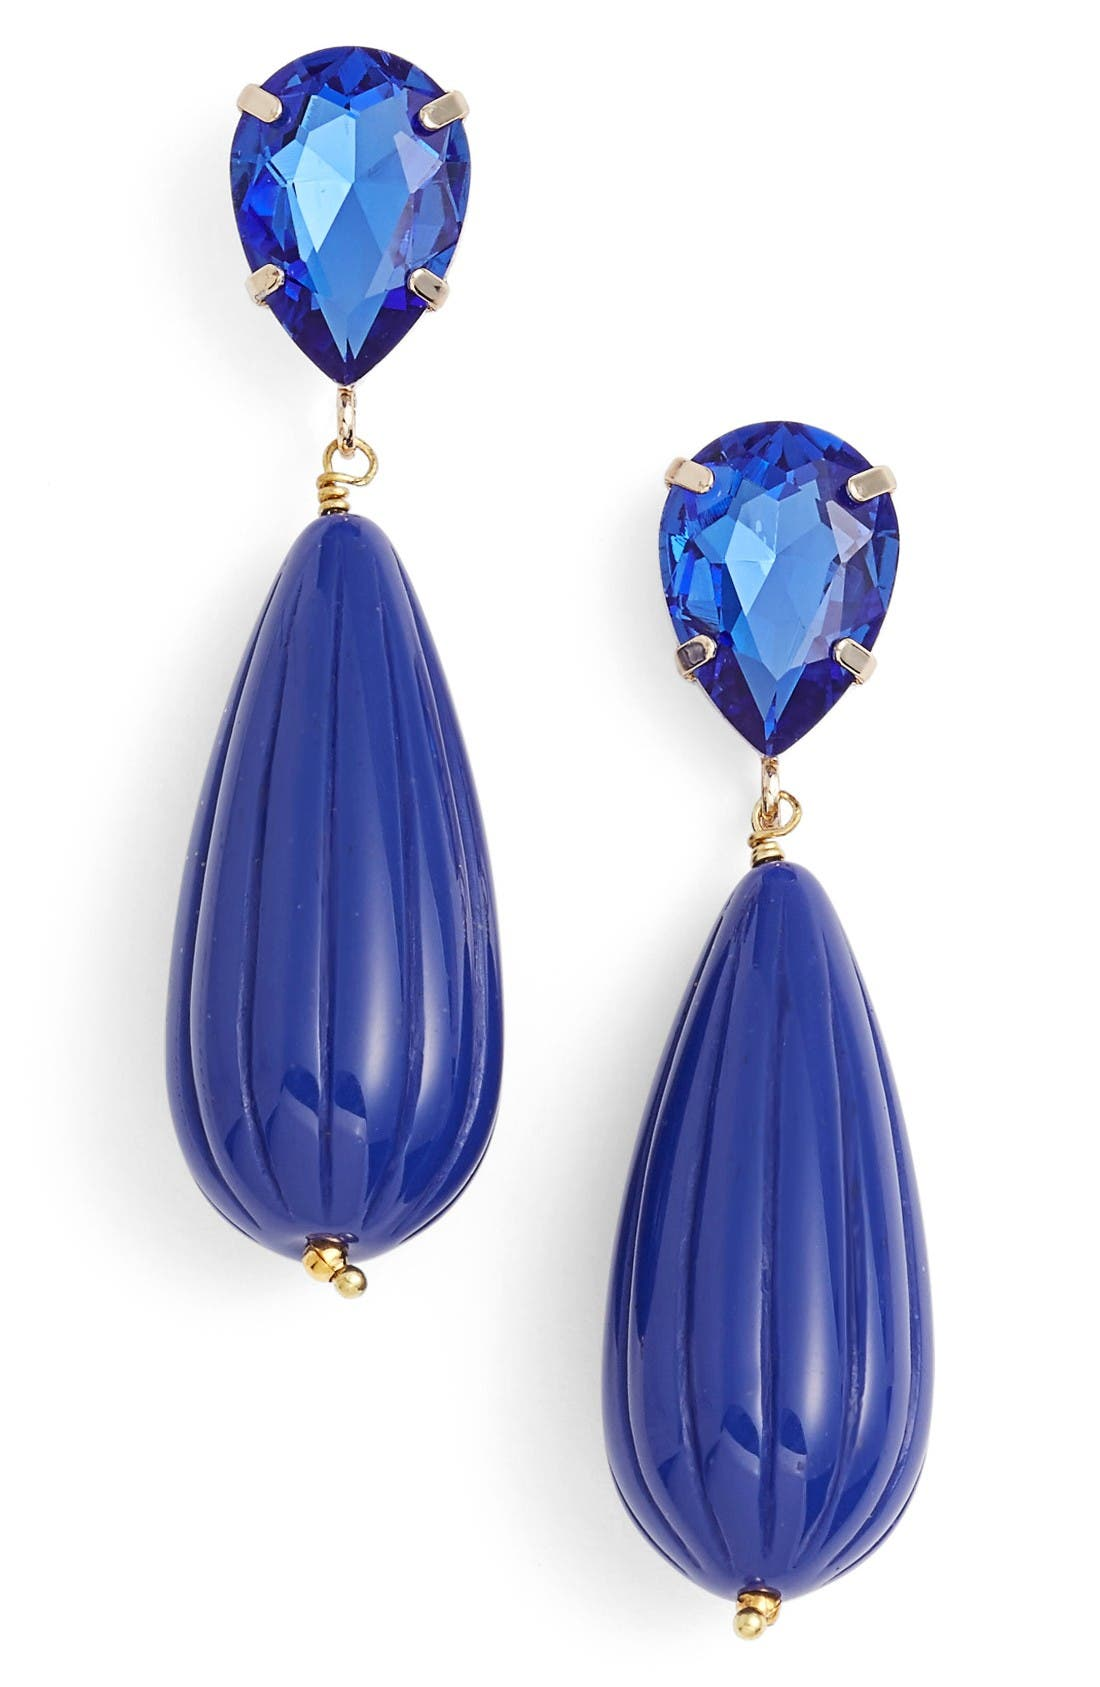 Main Image - ZENZII Teardrop Earrings